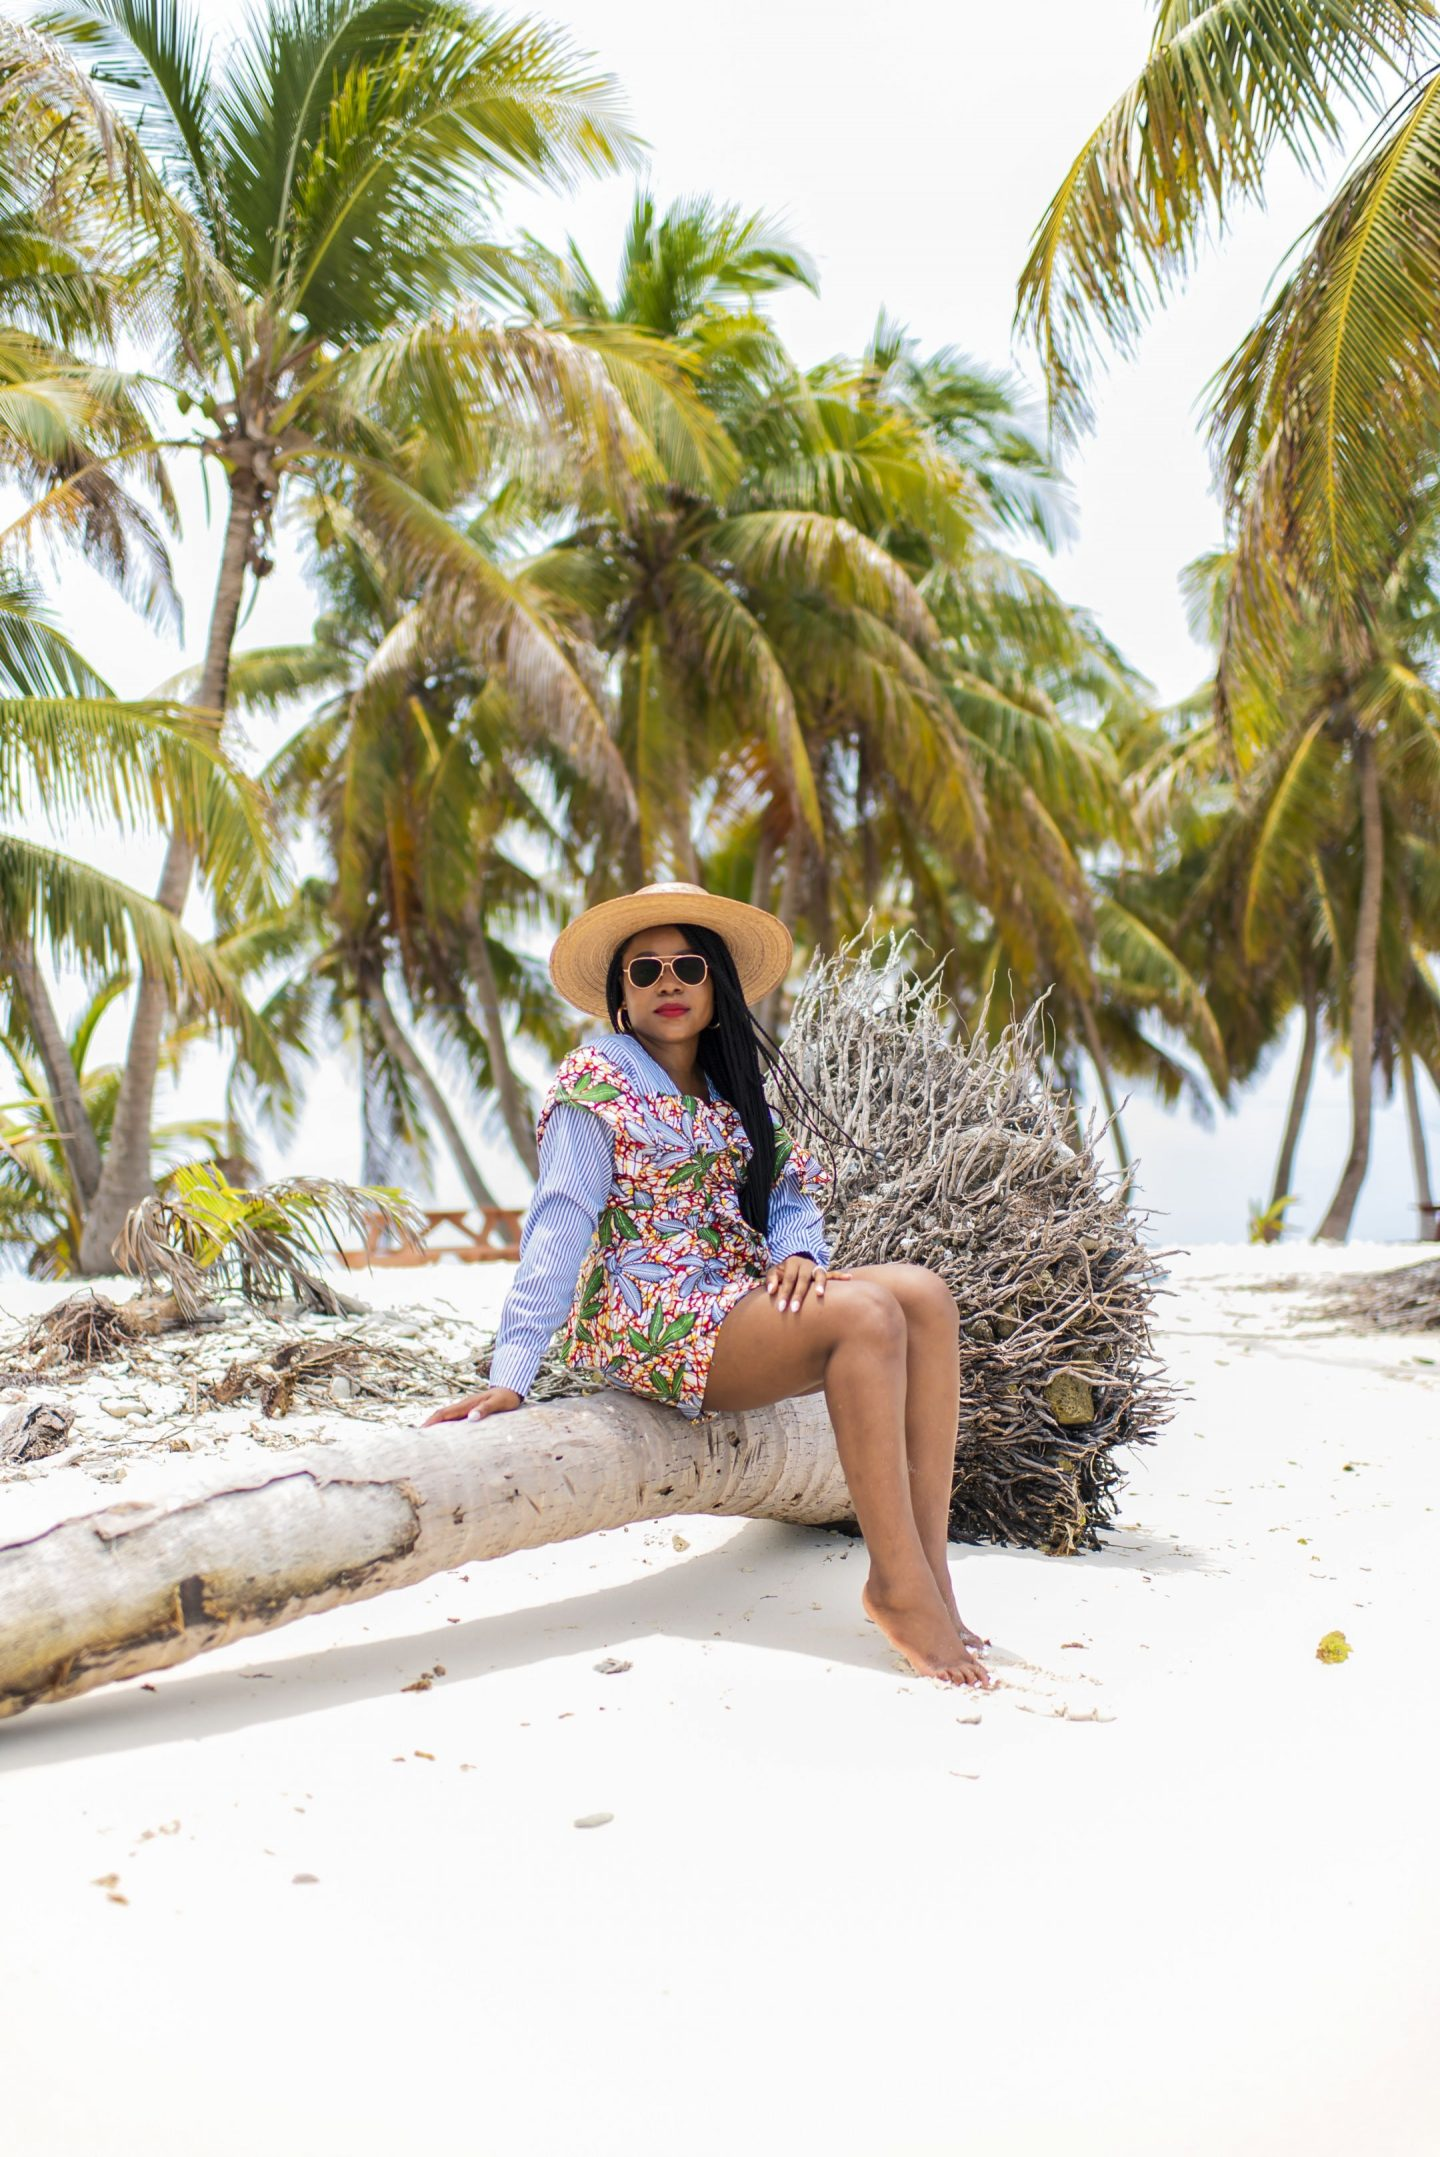 Things to know before traveling to Belize